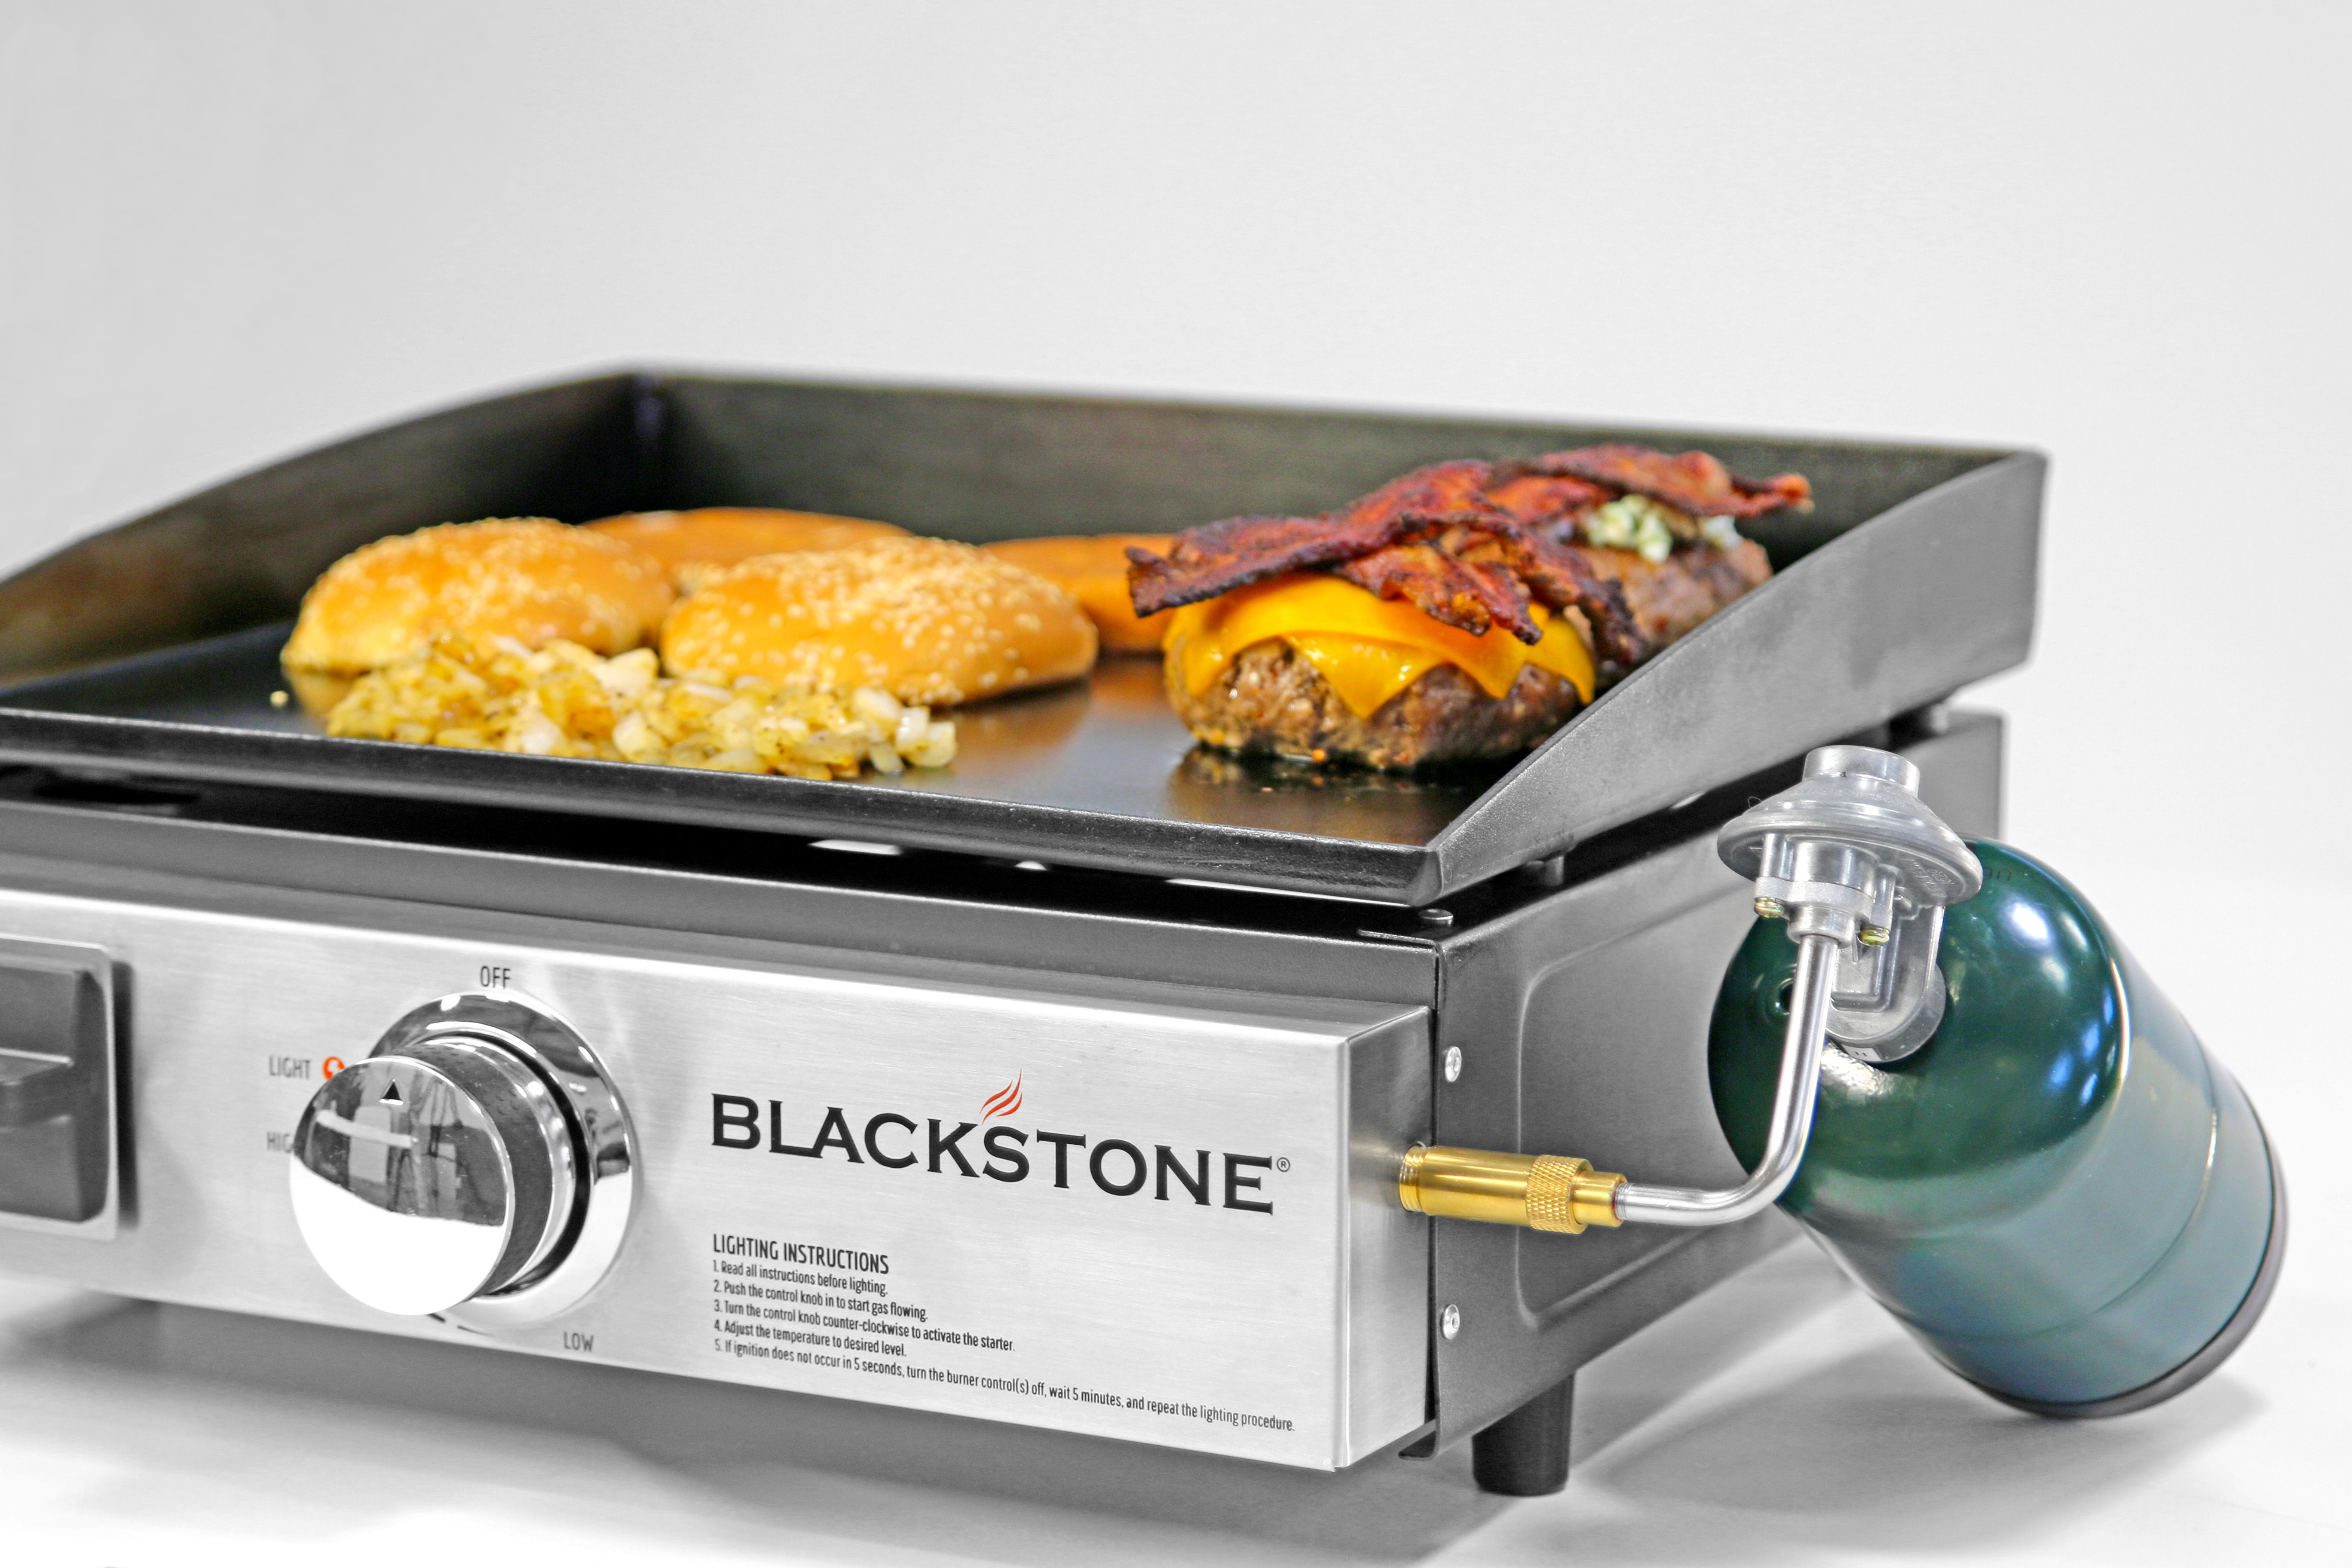 Blackstone 17 Table Top Griddle Blackstone Table Griddle Outdoor Cooking Cooking Equipment Gas Griddles